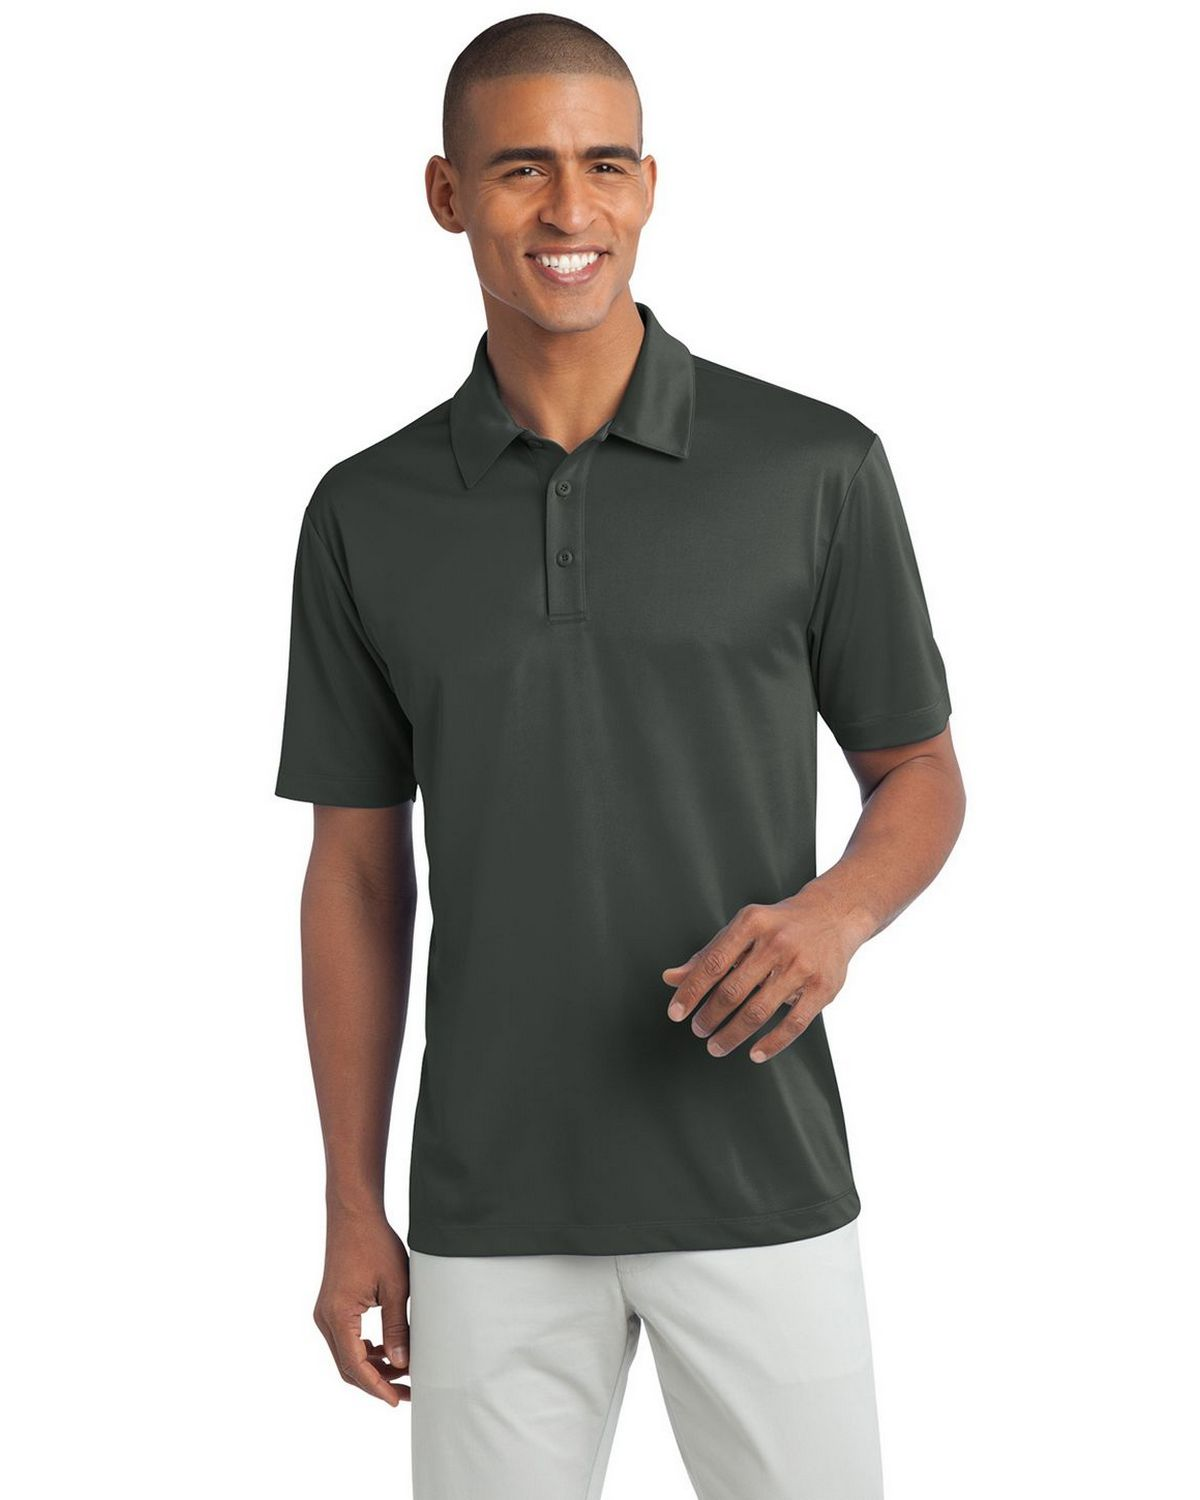 Port Authority K540 Men's Silk Touch Performance Polo - Steel Grey - XS #silk